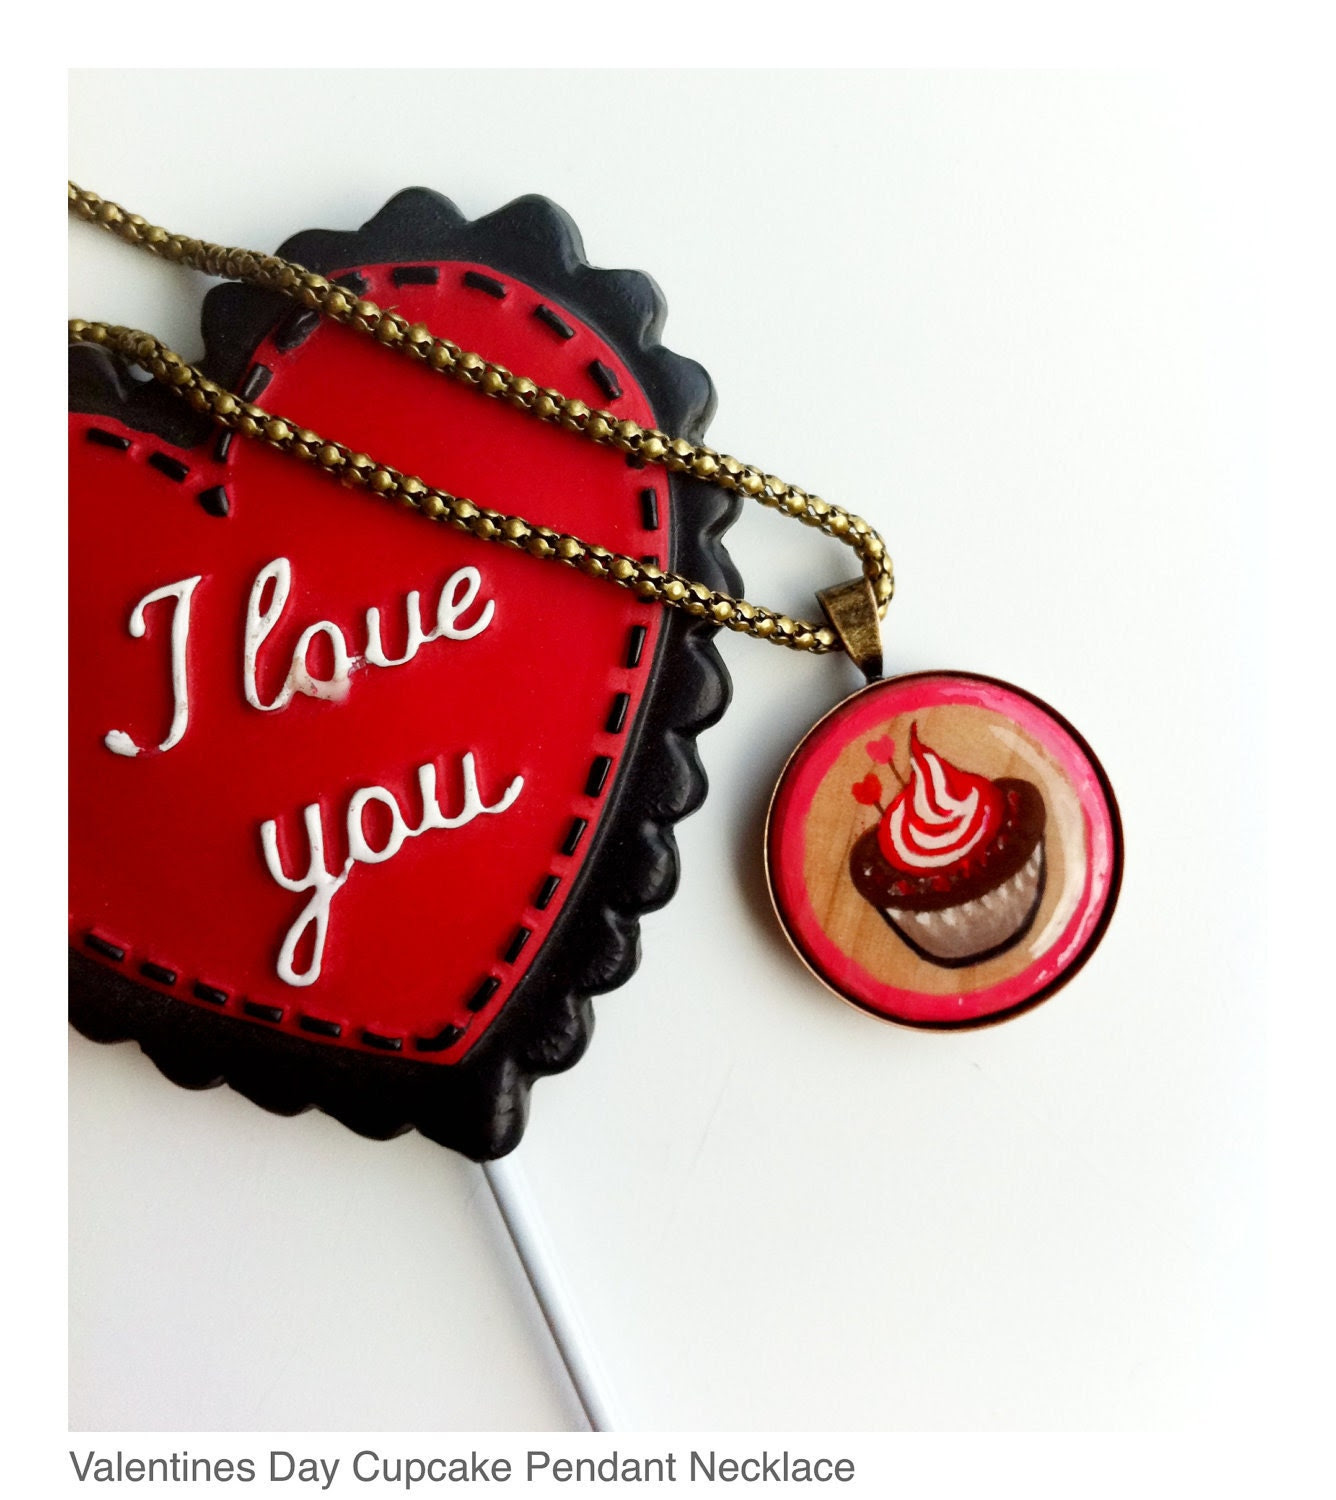 Cupcake Pendant, Valentines Day, Happy Art, Hand Painted, Miniature Painting, Kawaii Jewelry, Pink, Red, Wood and Metal, Bronze, FREE SHIP